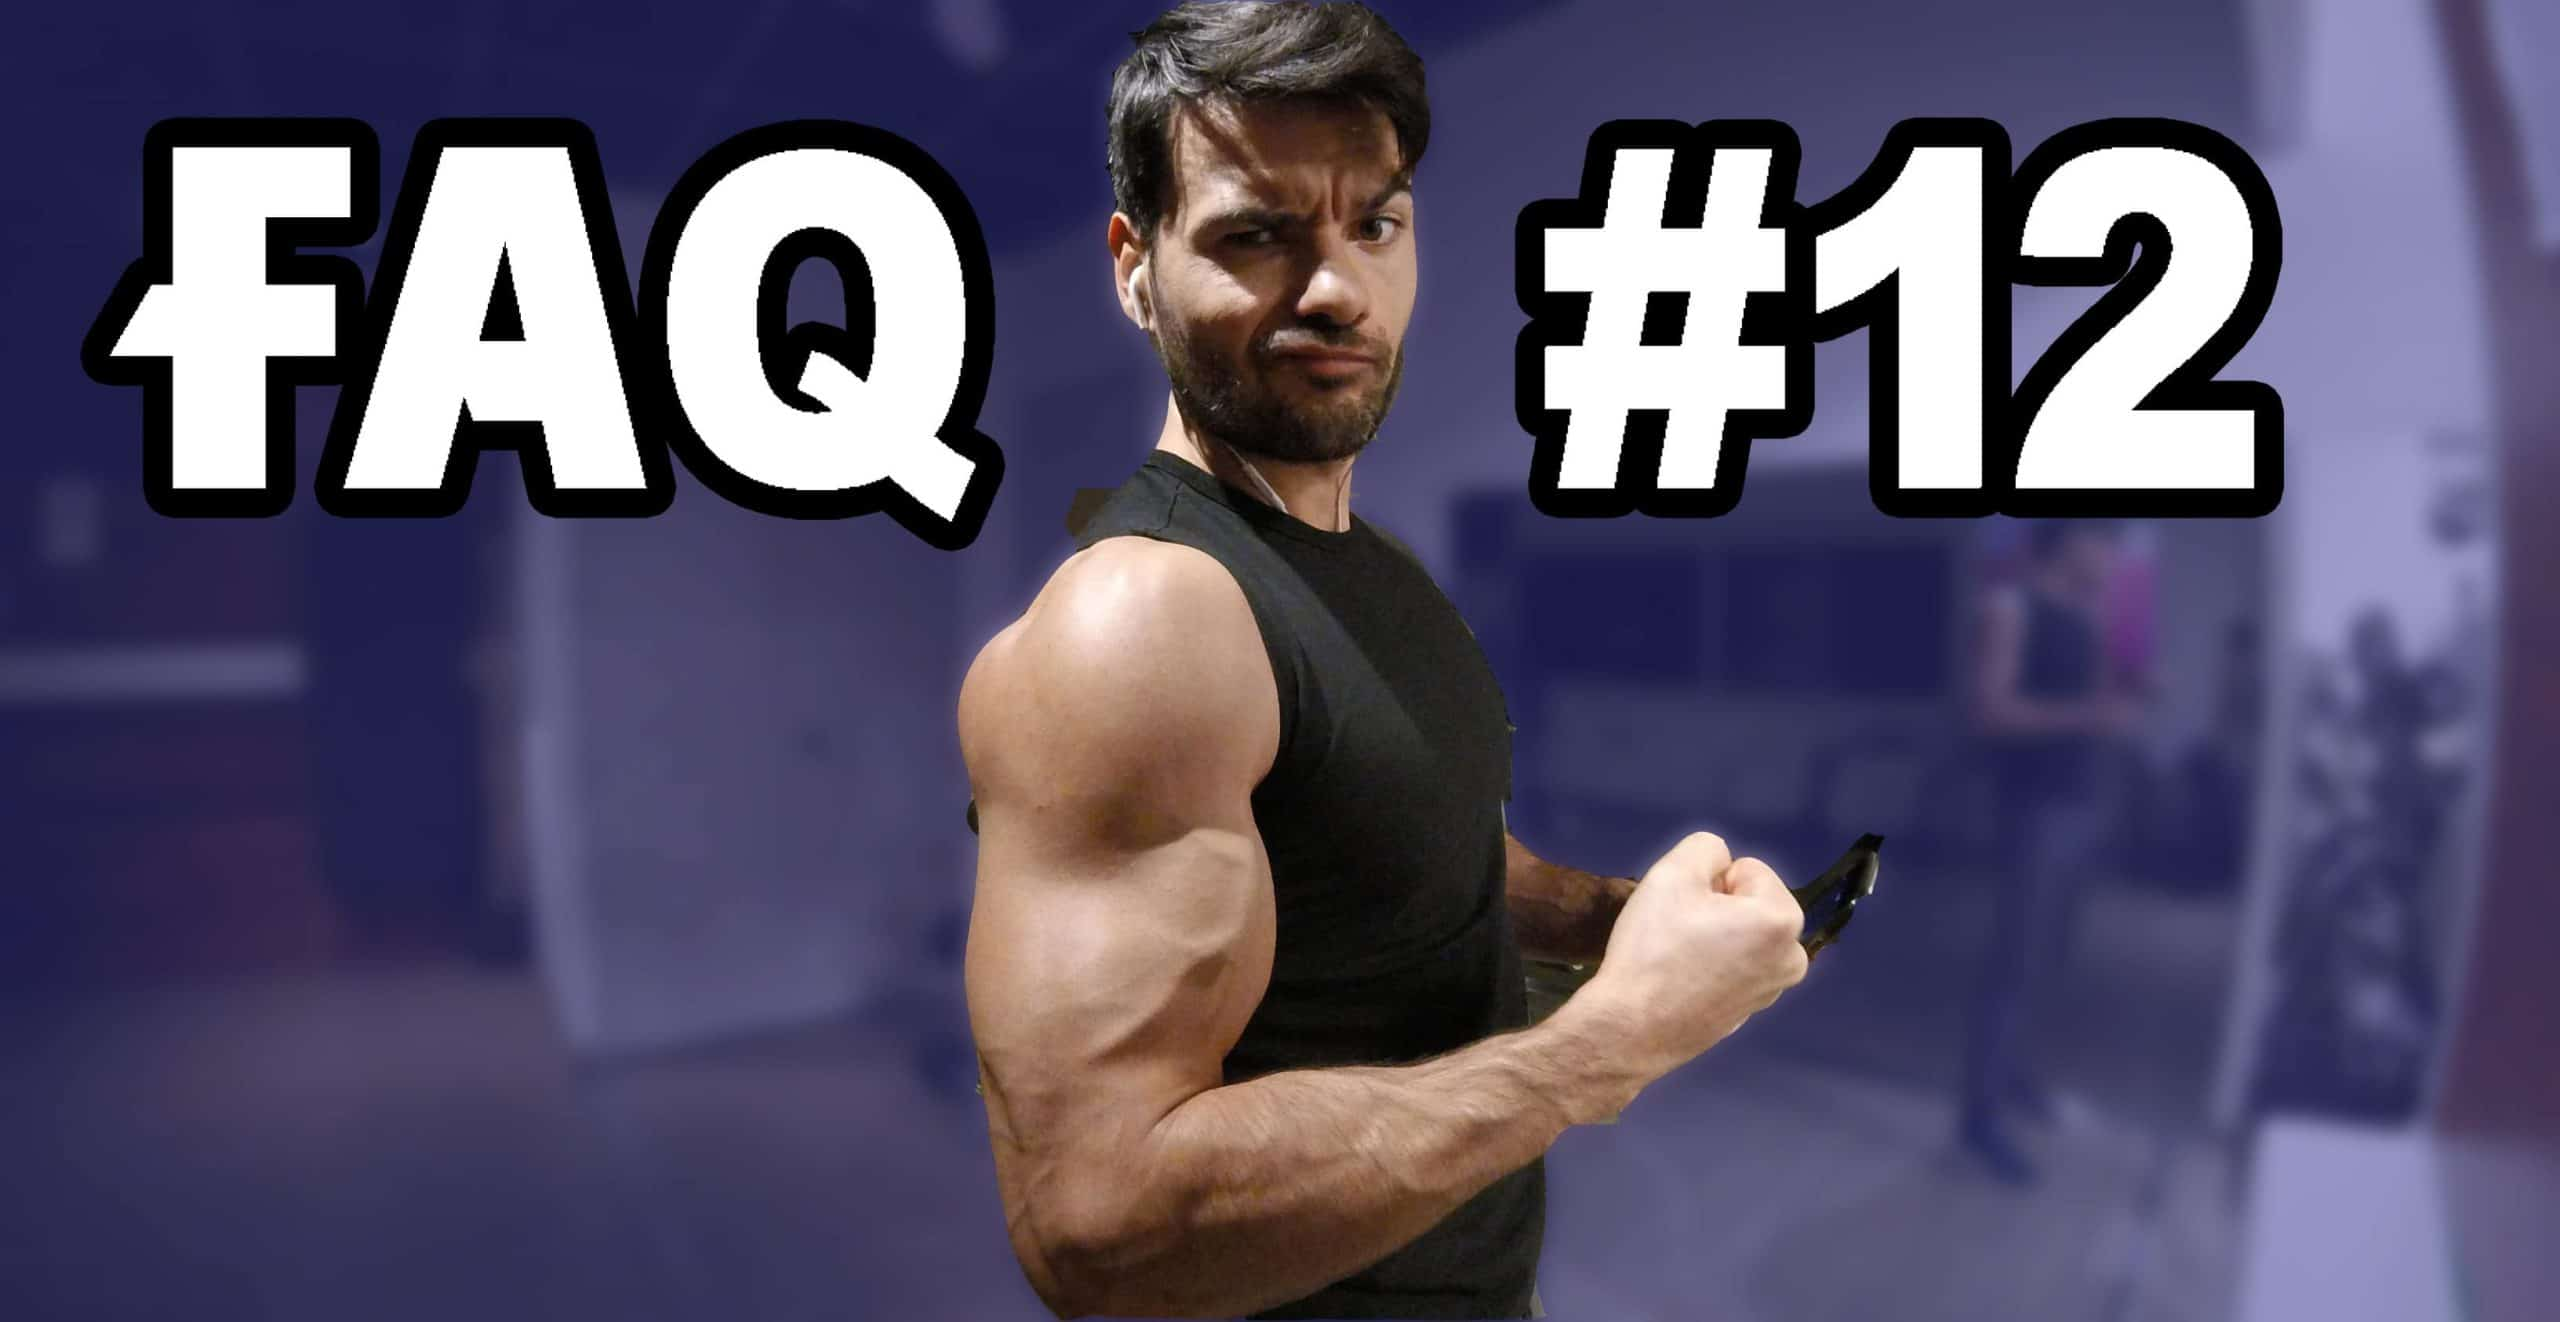 ?FAQ 12 : Pectus excavatum, Stress et progression, dopage vs naturel, addiction et solution…